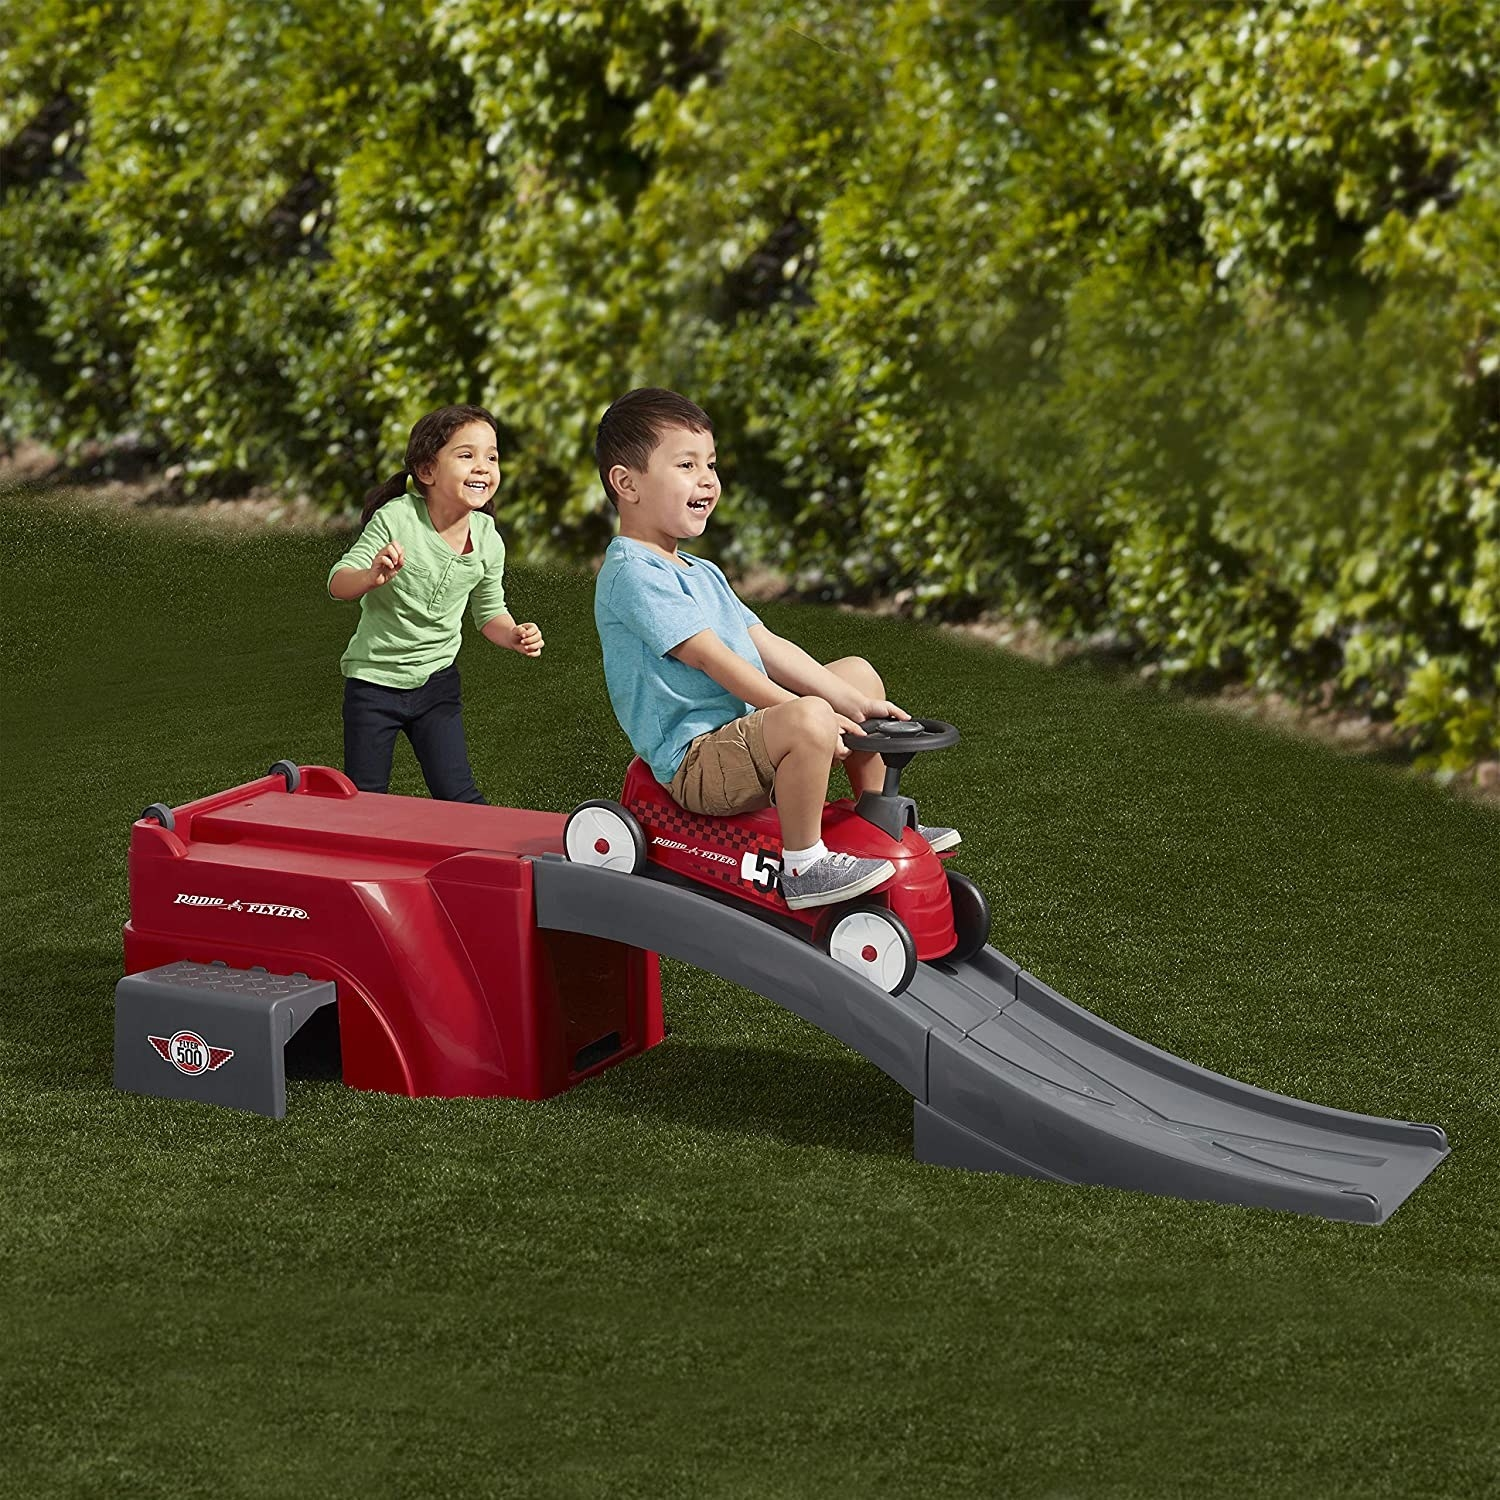 two kids playing, one is sitting on the radio flyer car gliding down a ramp